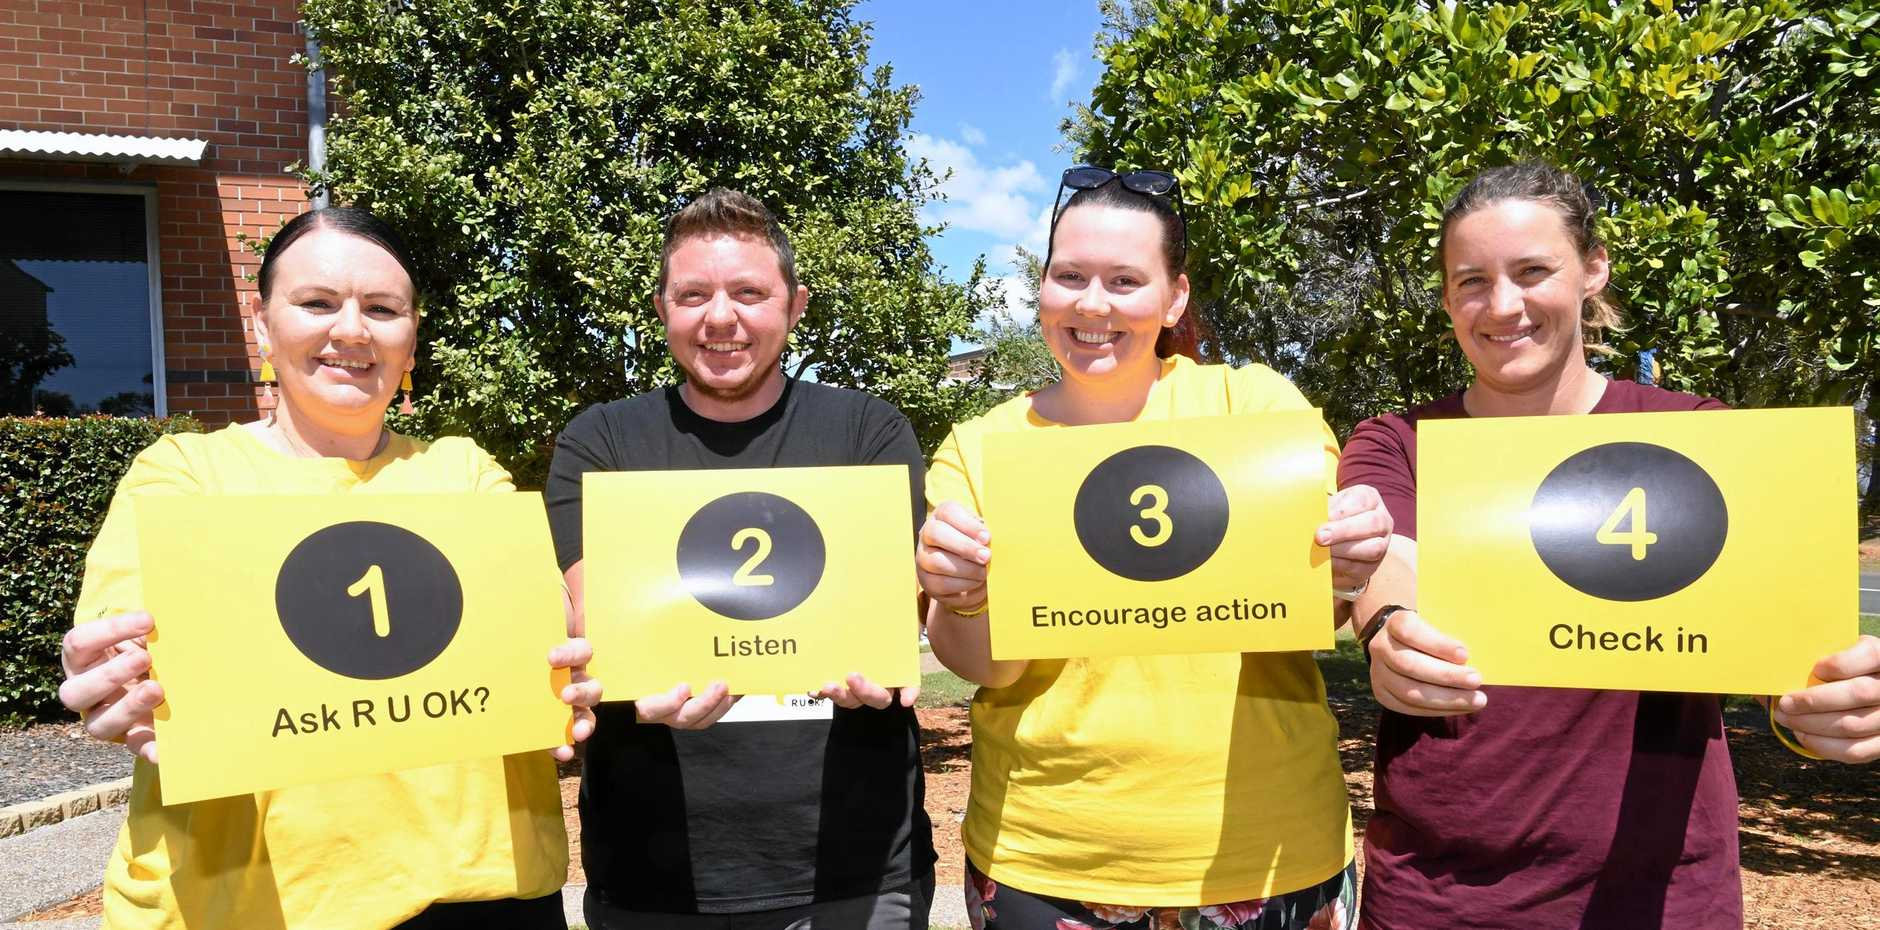 BRIDGING MENTAL HEALTH: USC Fraser Coast students Kelea Wyatt, Kyron King, Kymberly Smith and Samarah Evans at the campus' R U OK Day. The support group helps connect Fraser Coast students with the services they need to treat mental health problems.